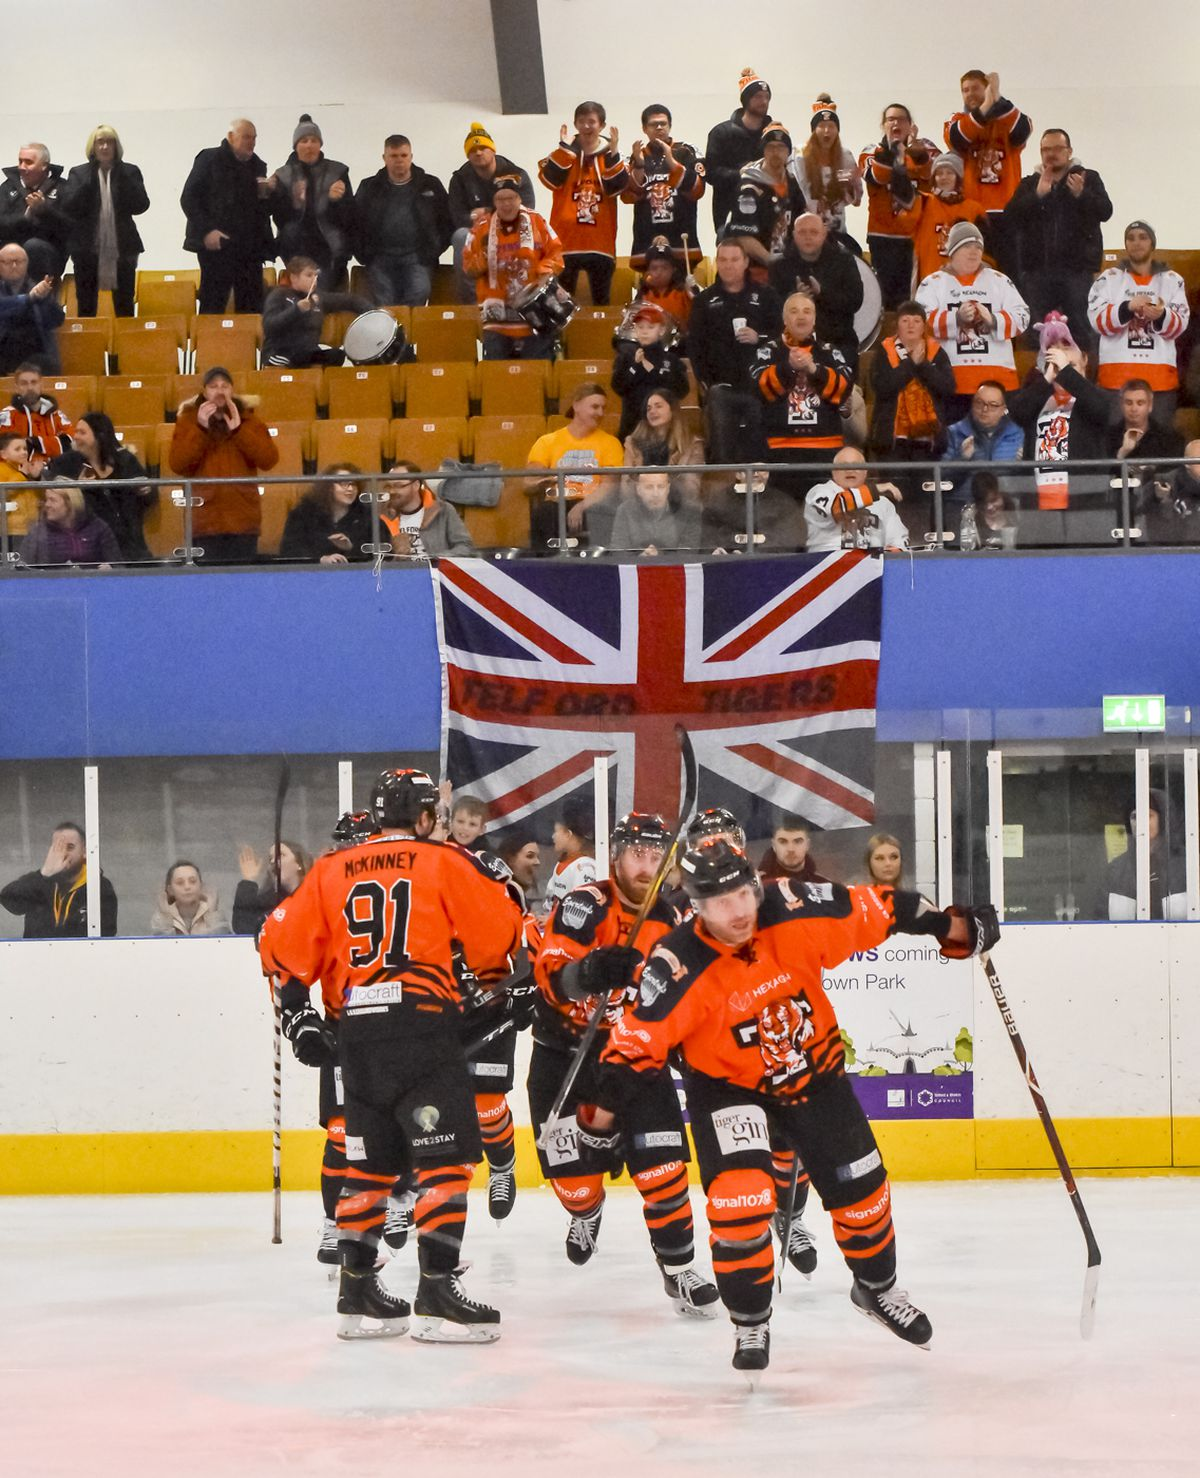 Ricky Plant leads the Tigers to the bench after opening the score for the Tigers